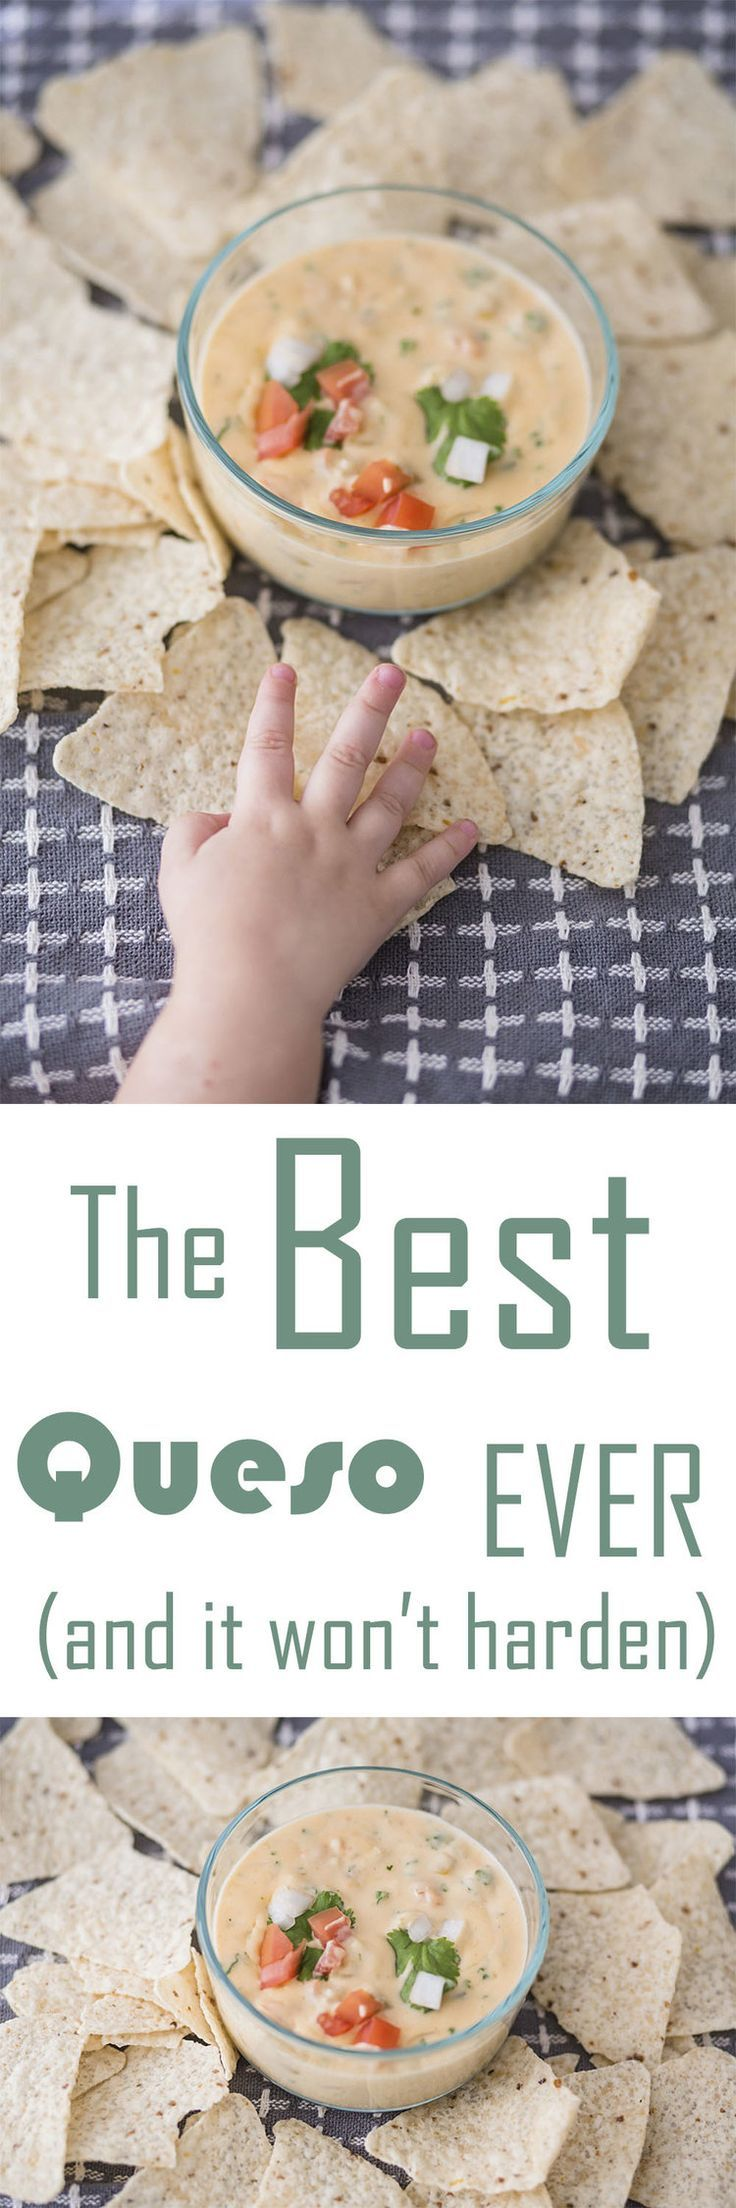 The BEST queso ever! This delicious cheese dip is made from more natural ingredients and won't turn into a hard goopy mess. This is definitely something you'll want at your next party. #queso #dips #partyfood #snacks